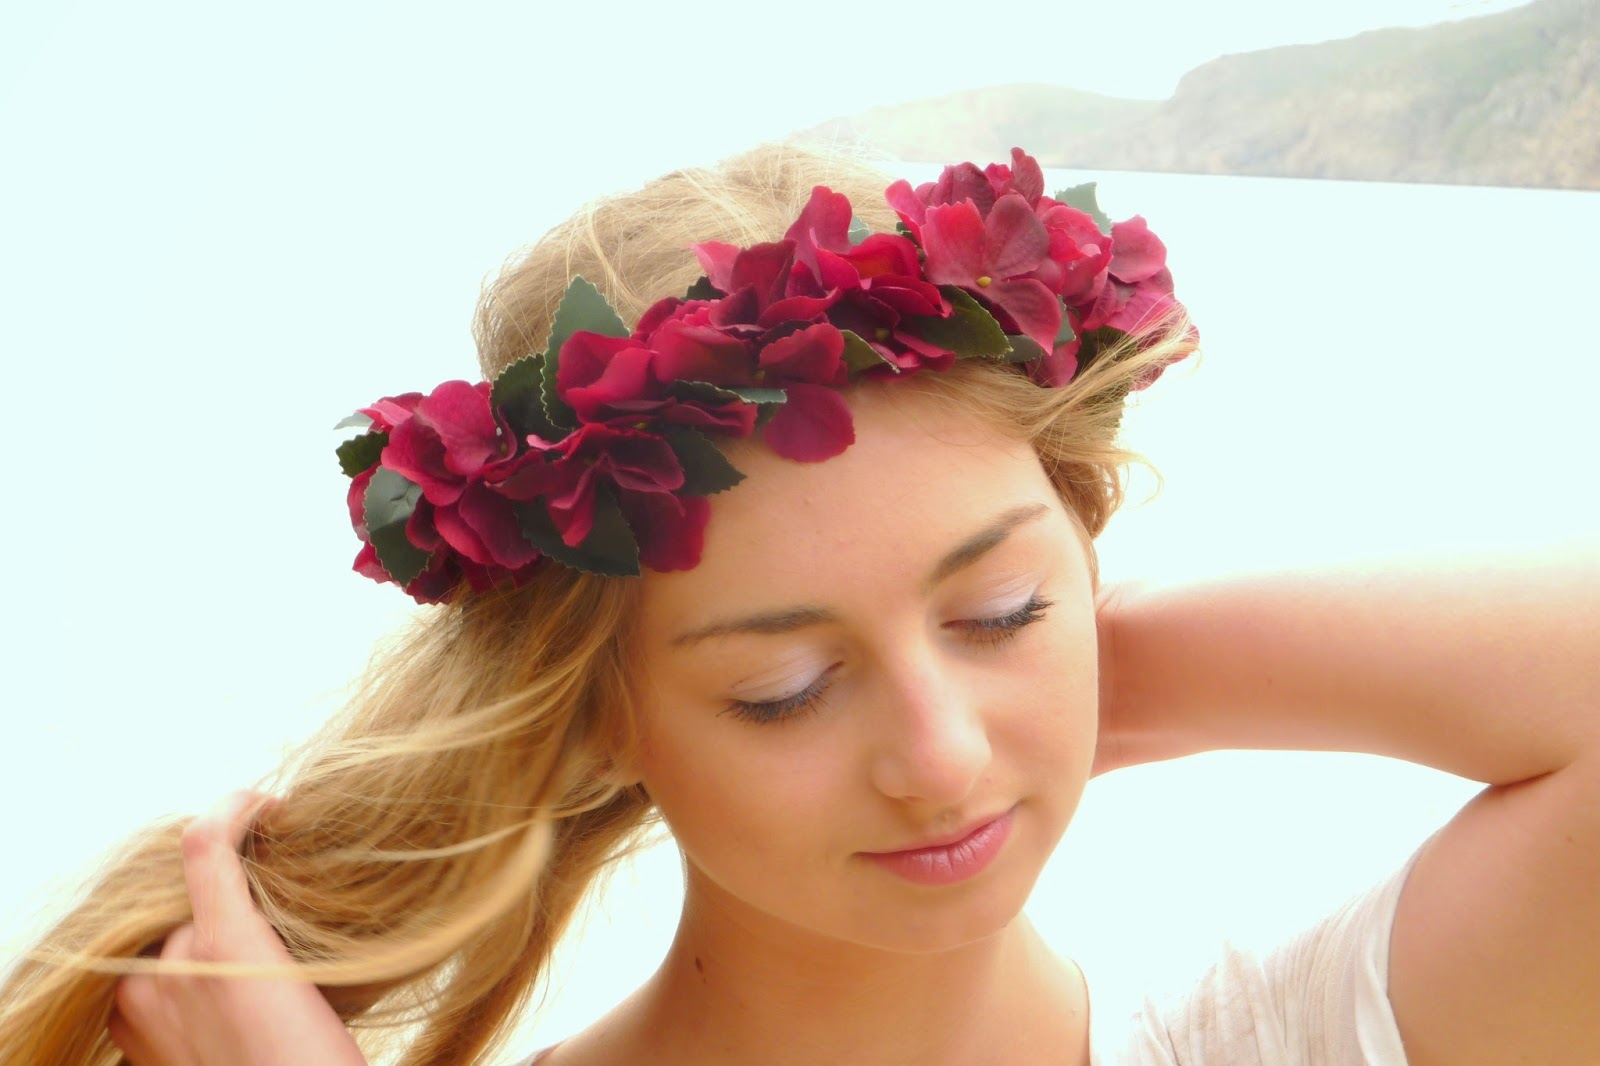 Red flower crown summer day flower crown rose headband rose crown red flower crown summer day flower crown rose headband rose crown wedding hair red flower girl crown hair wreath izmirmasajfo Image collections